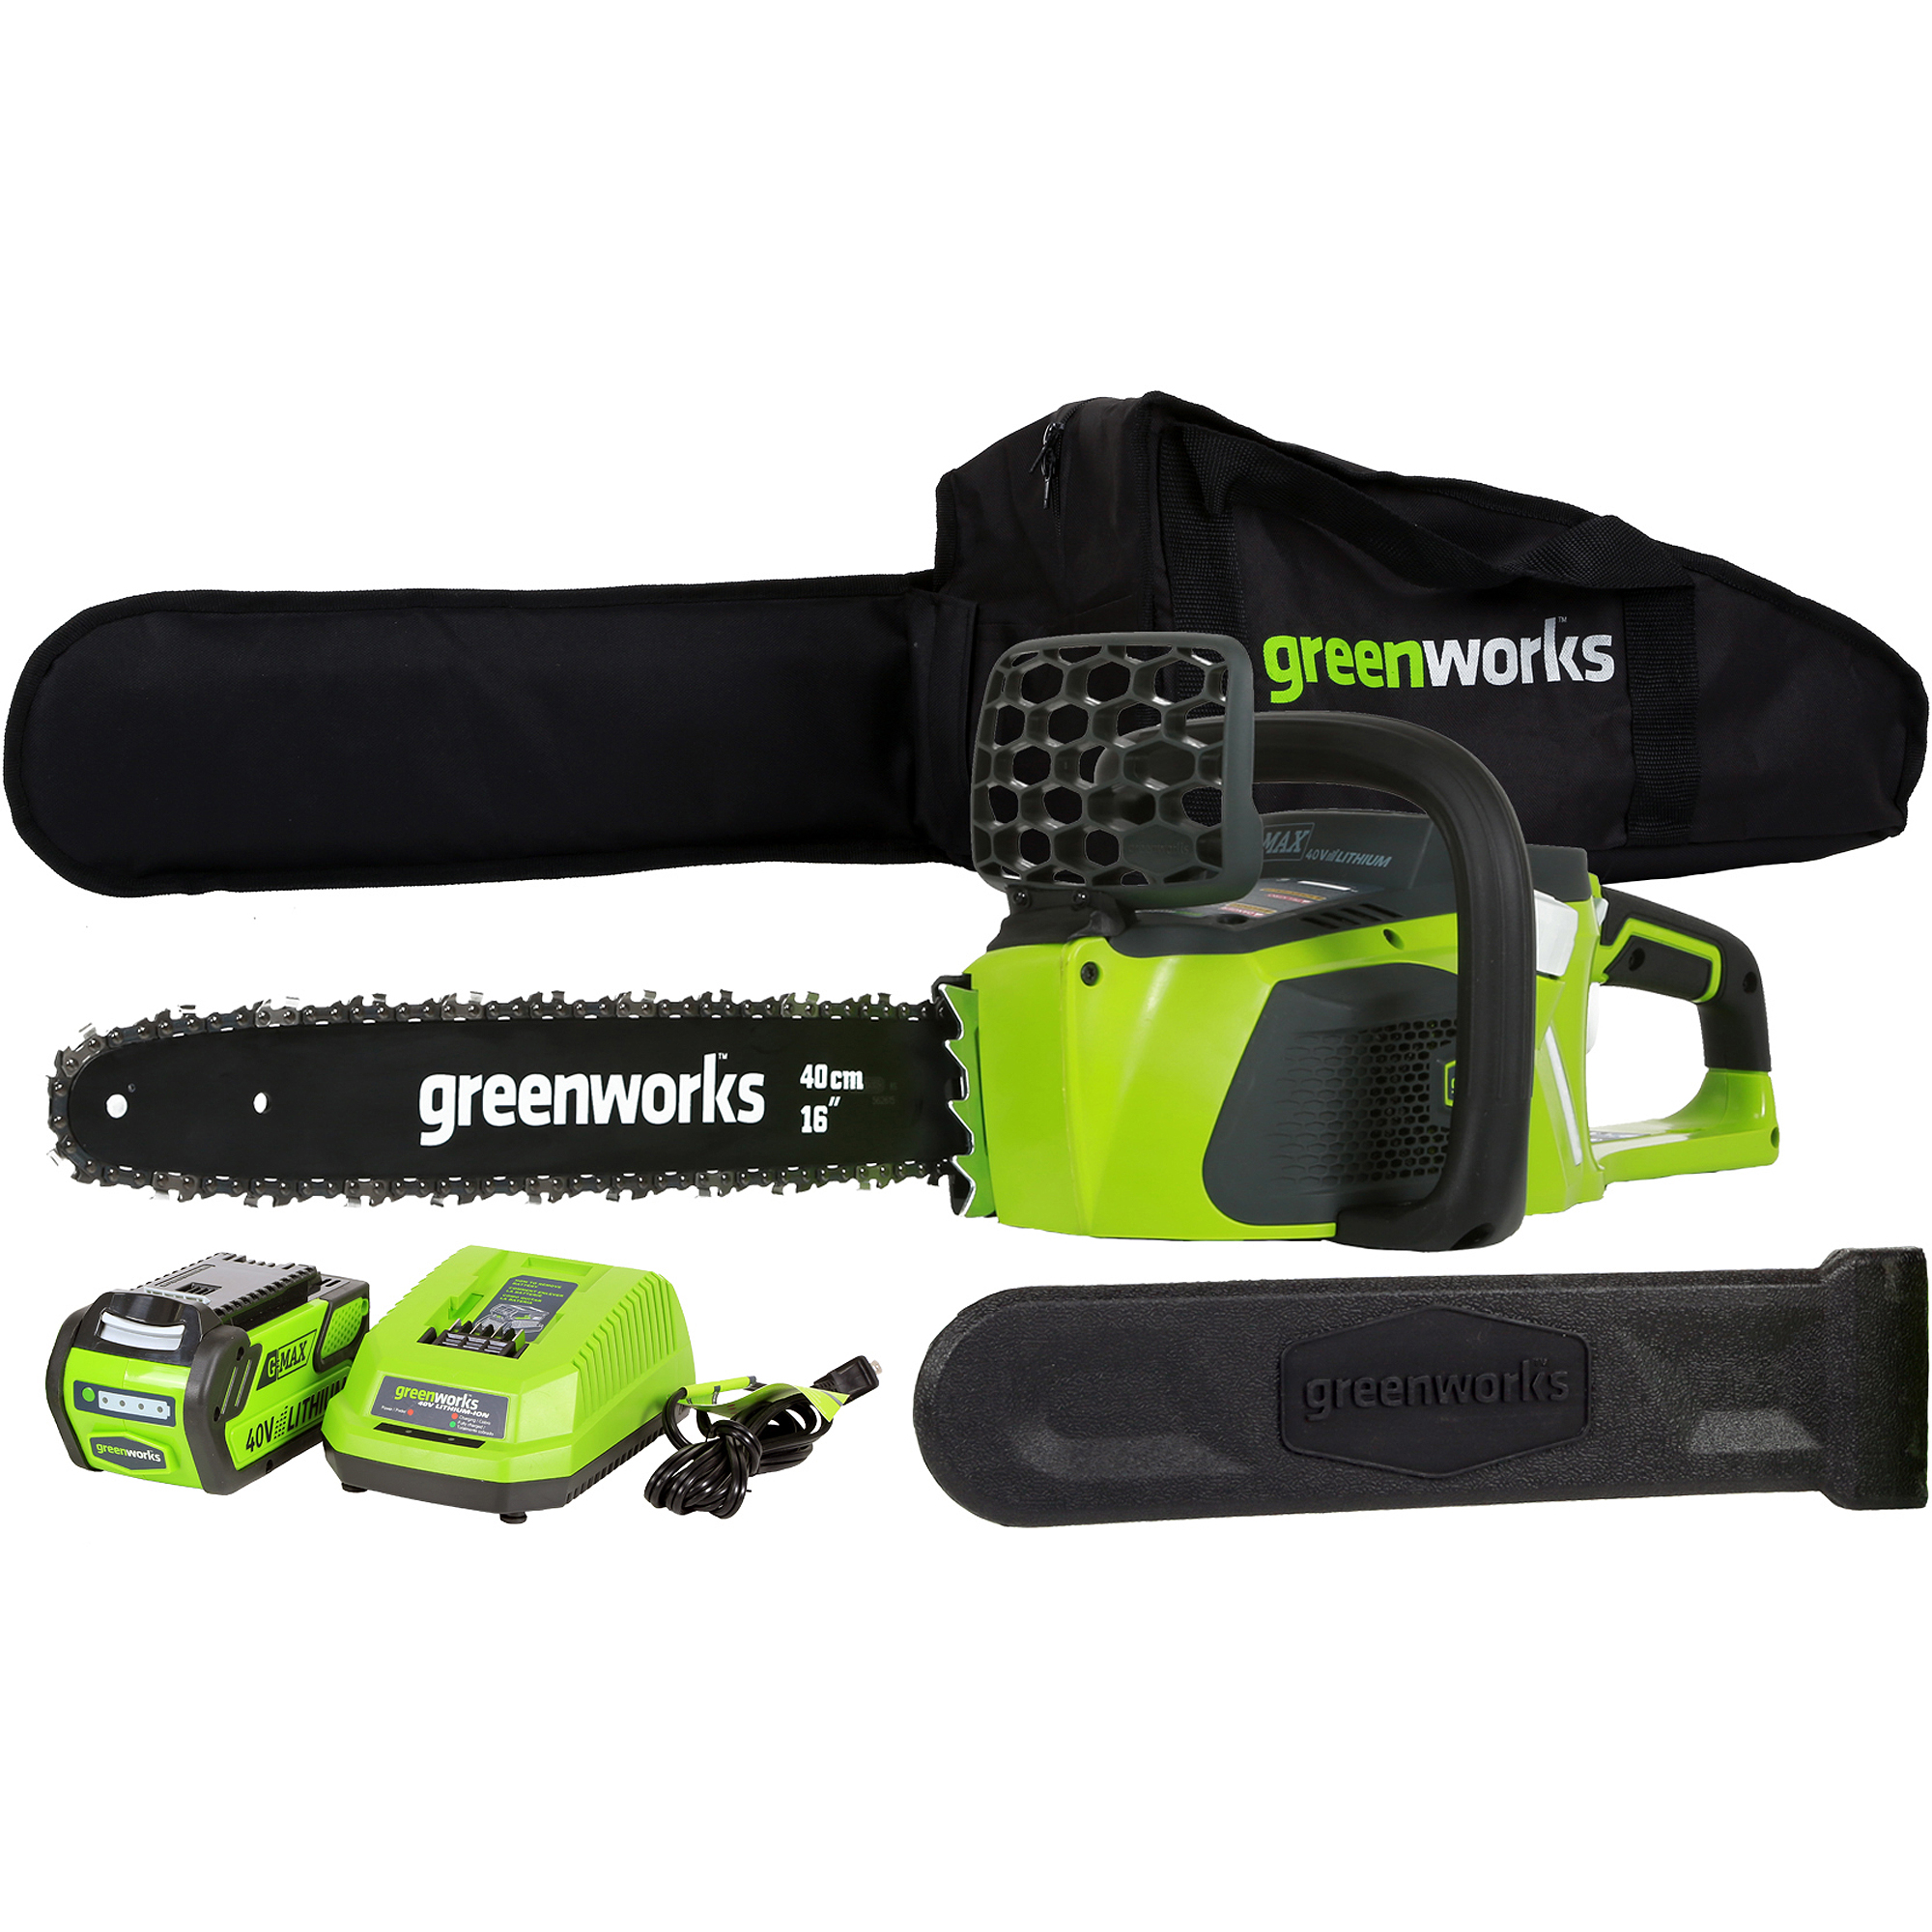 "GreenWorks 20312 40V 16"" Brushless Chainsaw, Includes 4Ah Battery and Charger"